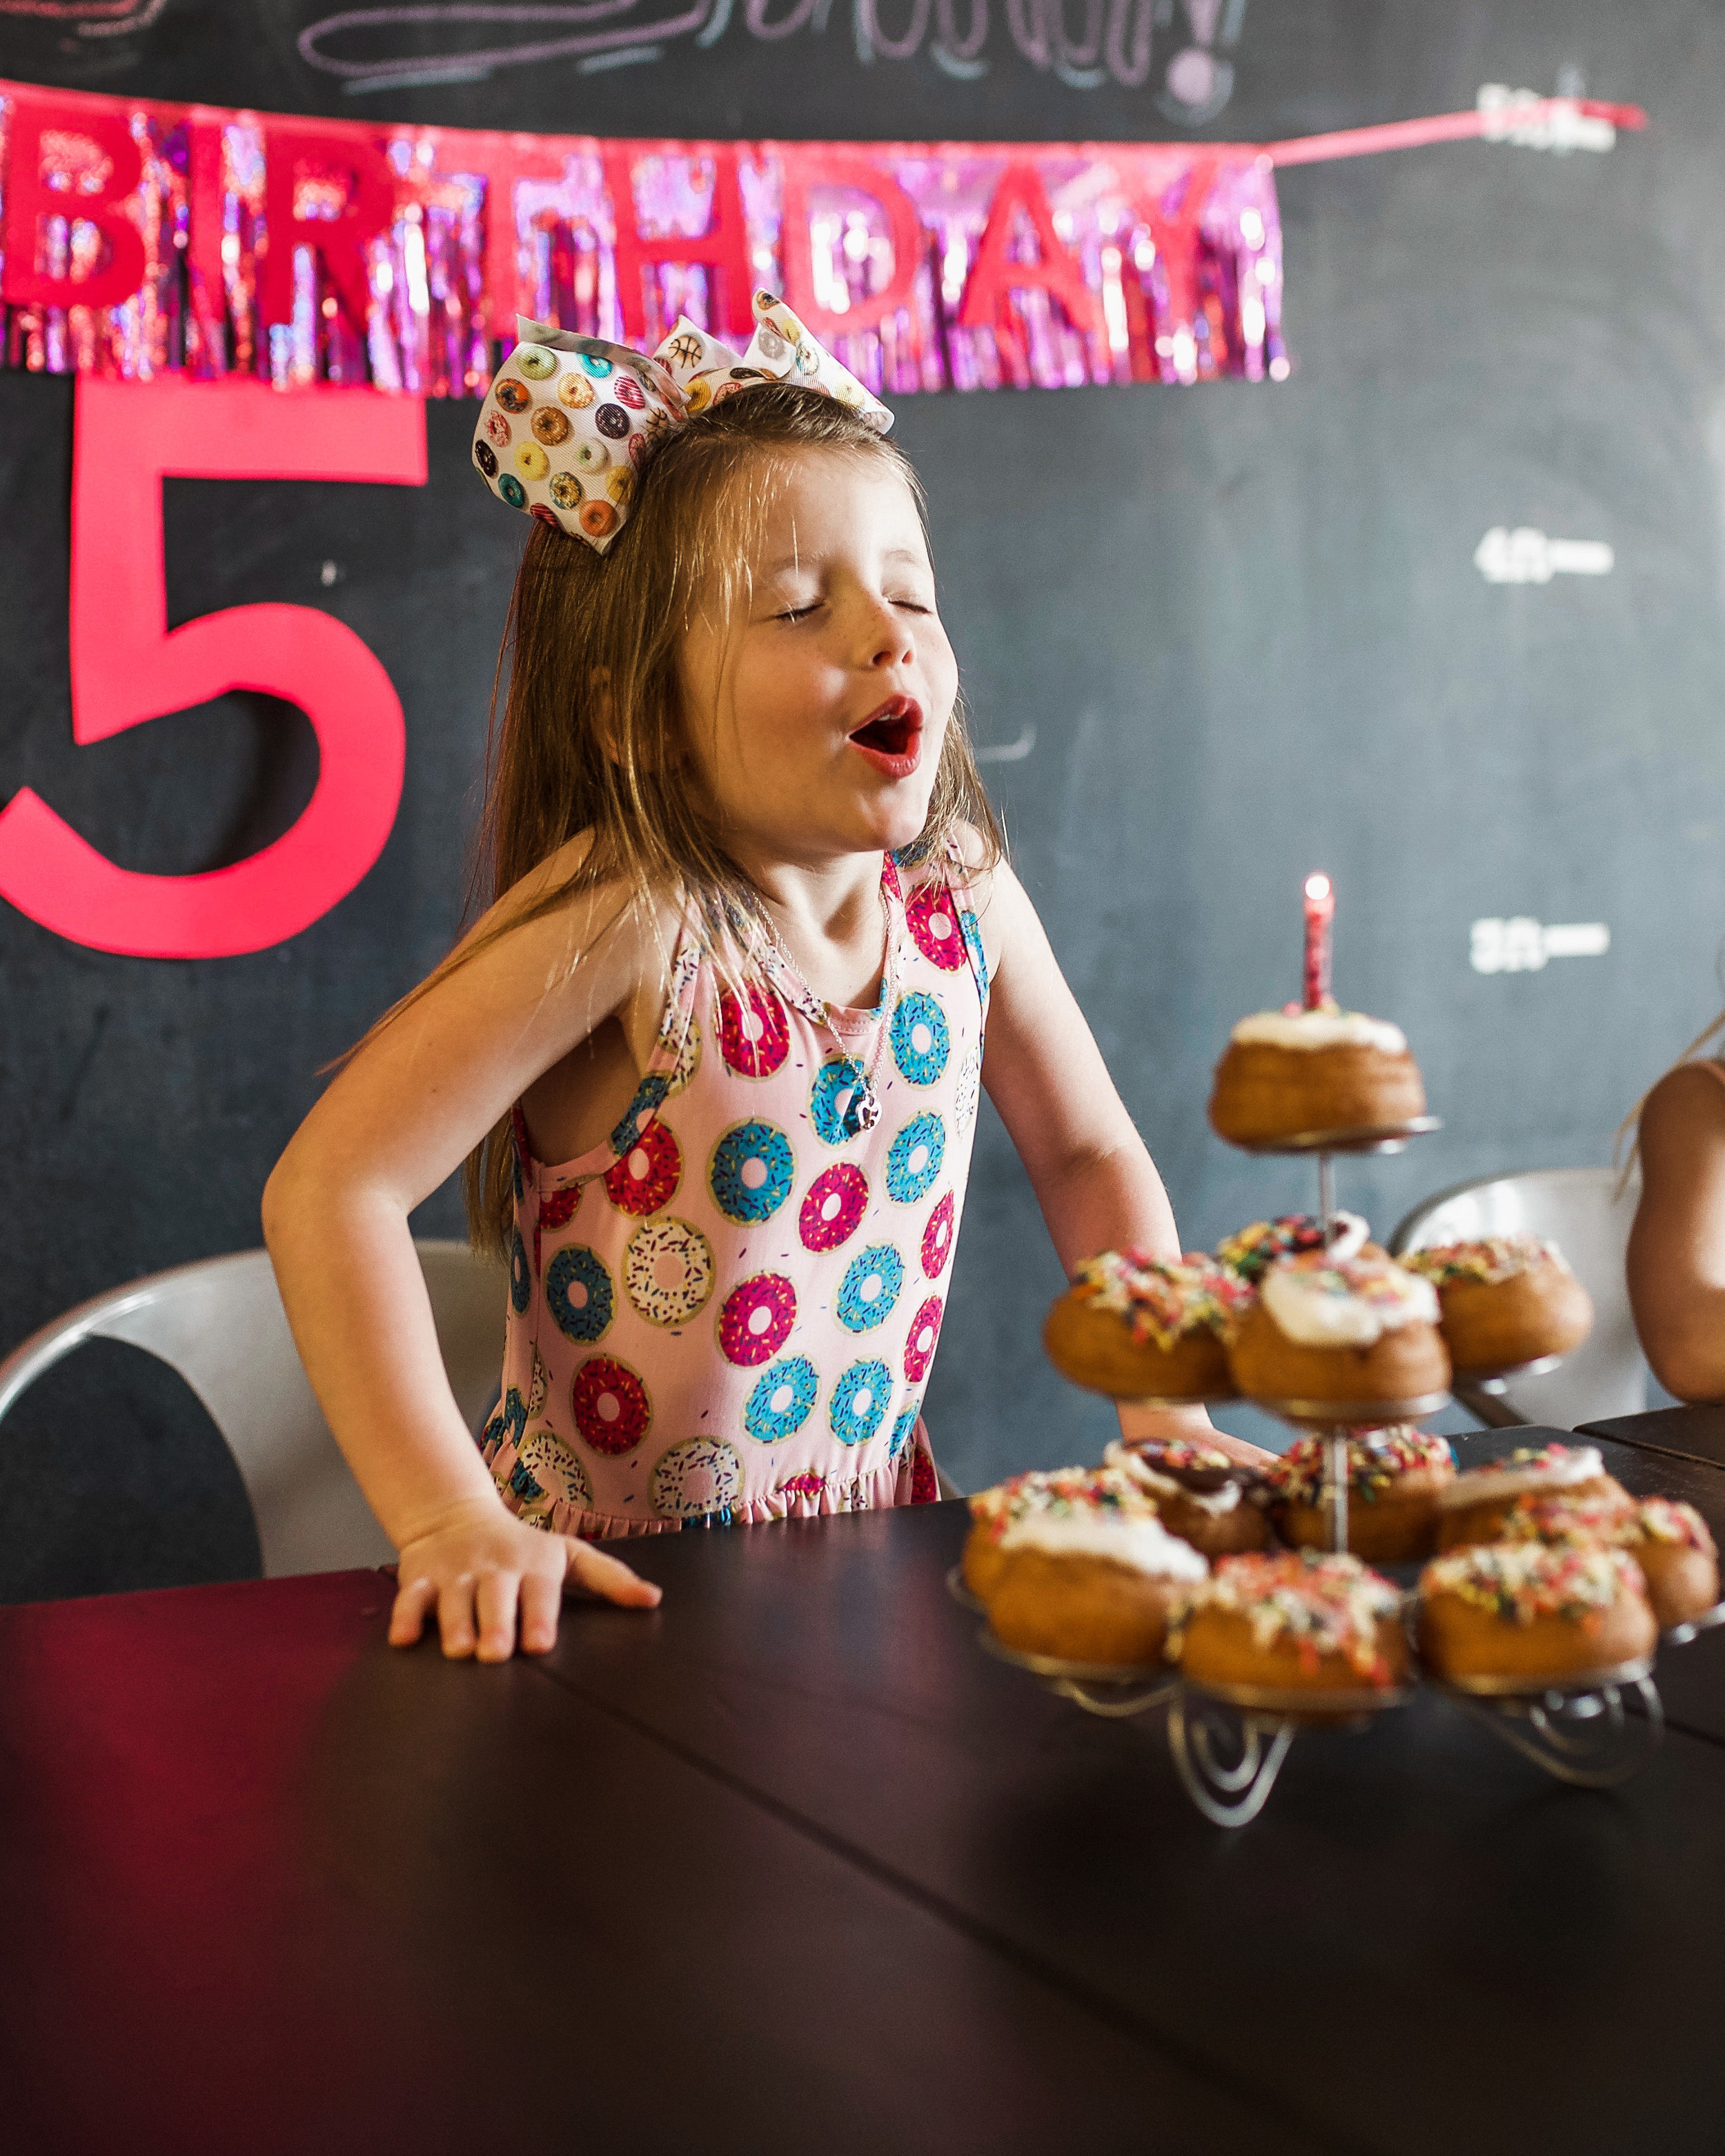 da vinci's donuts birthday party